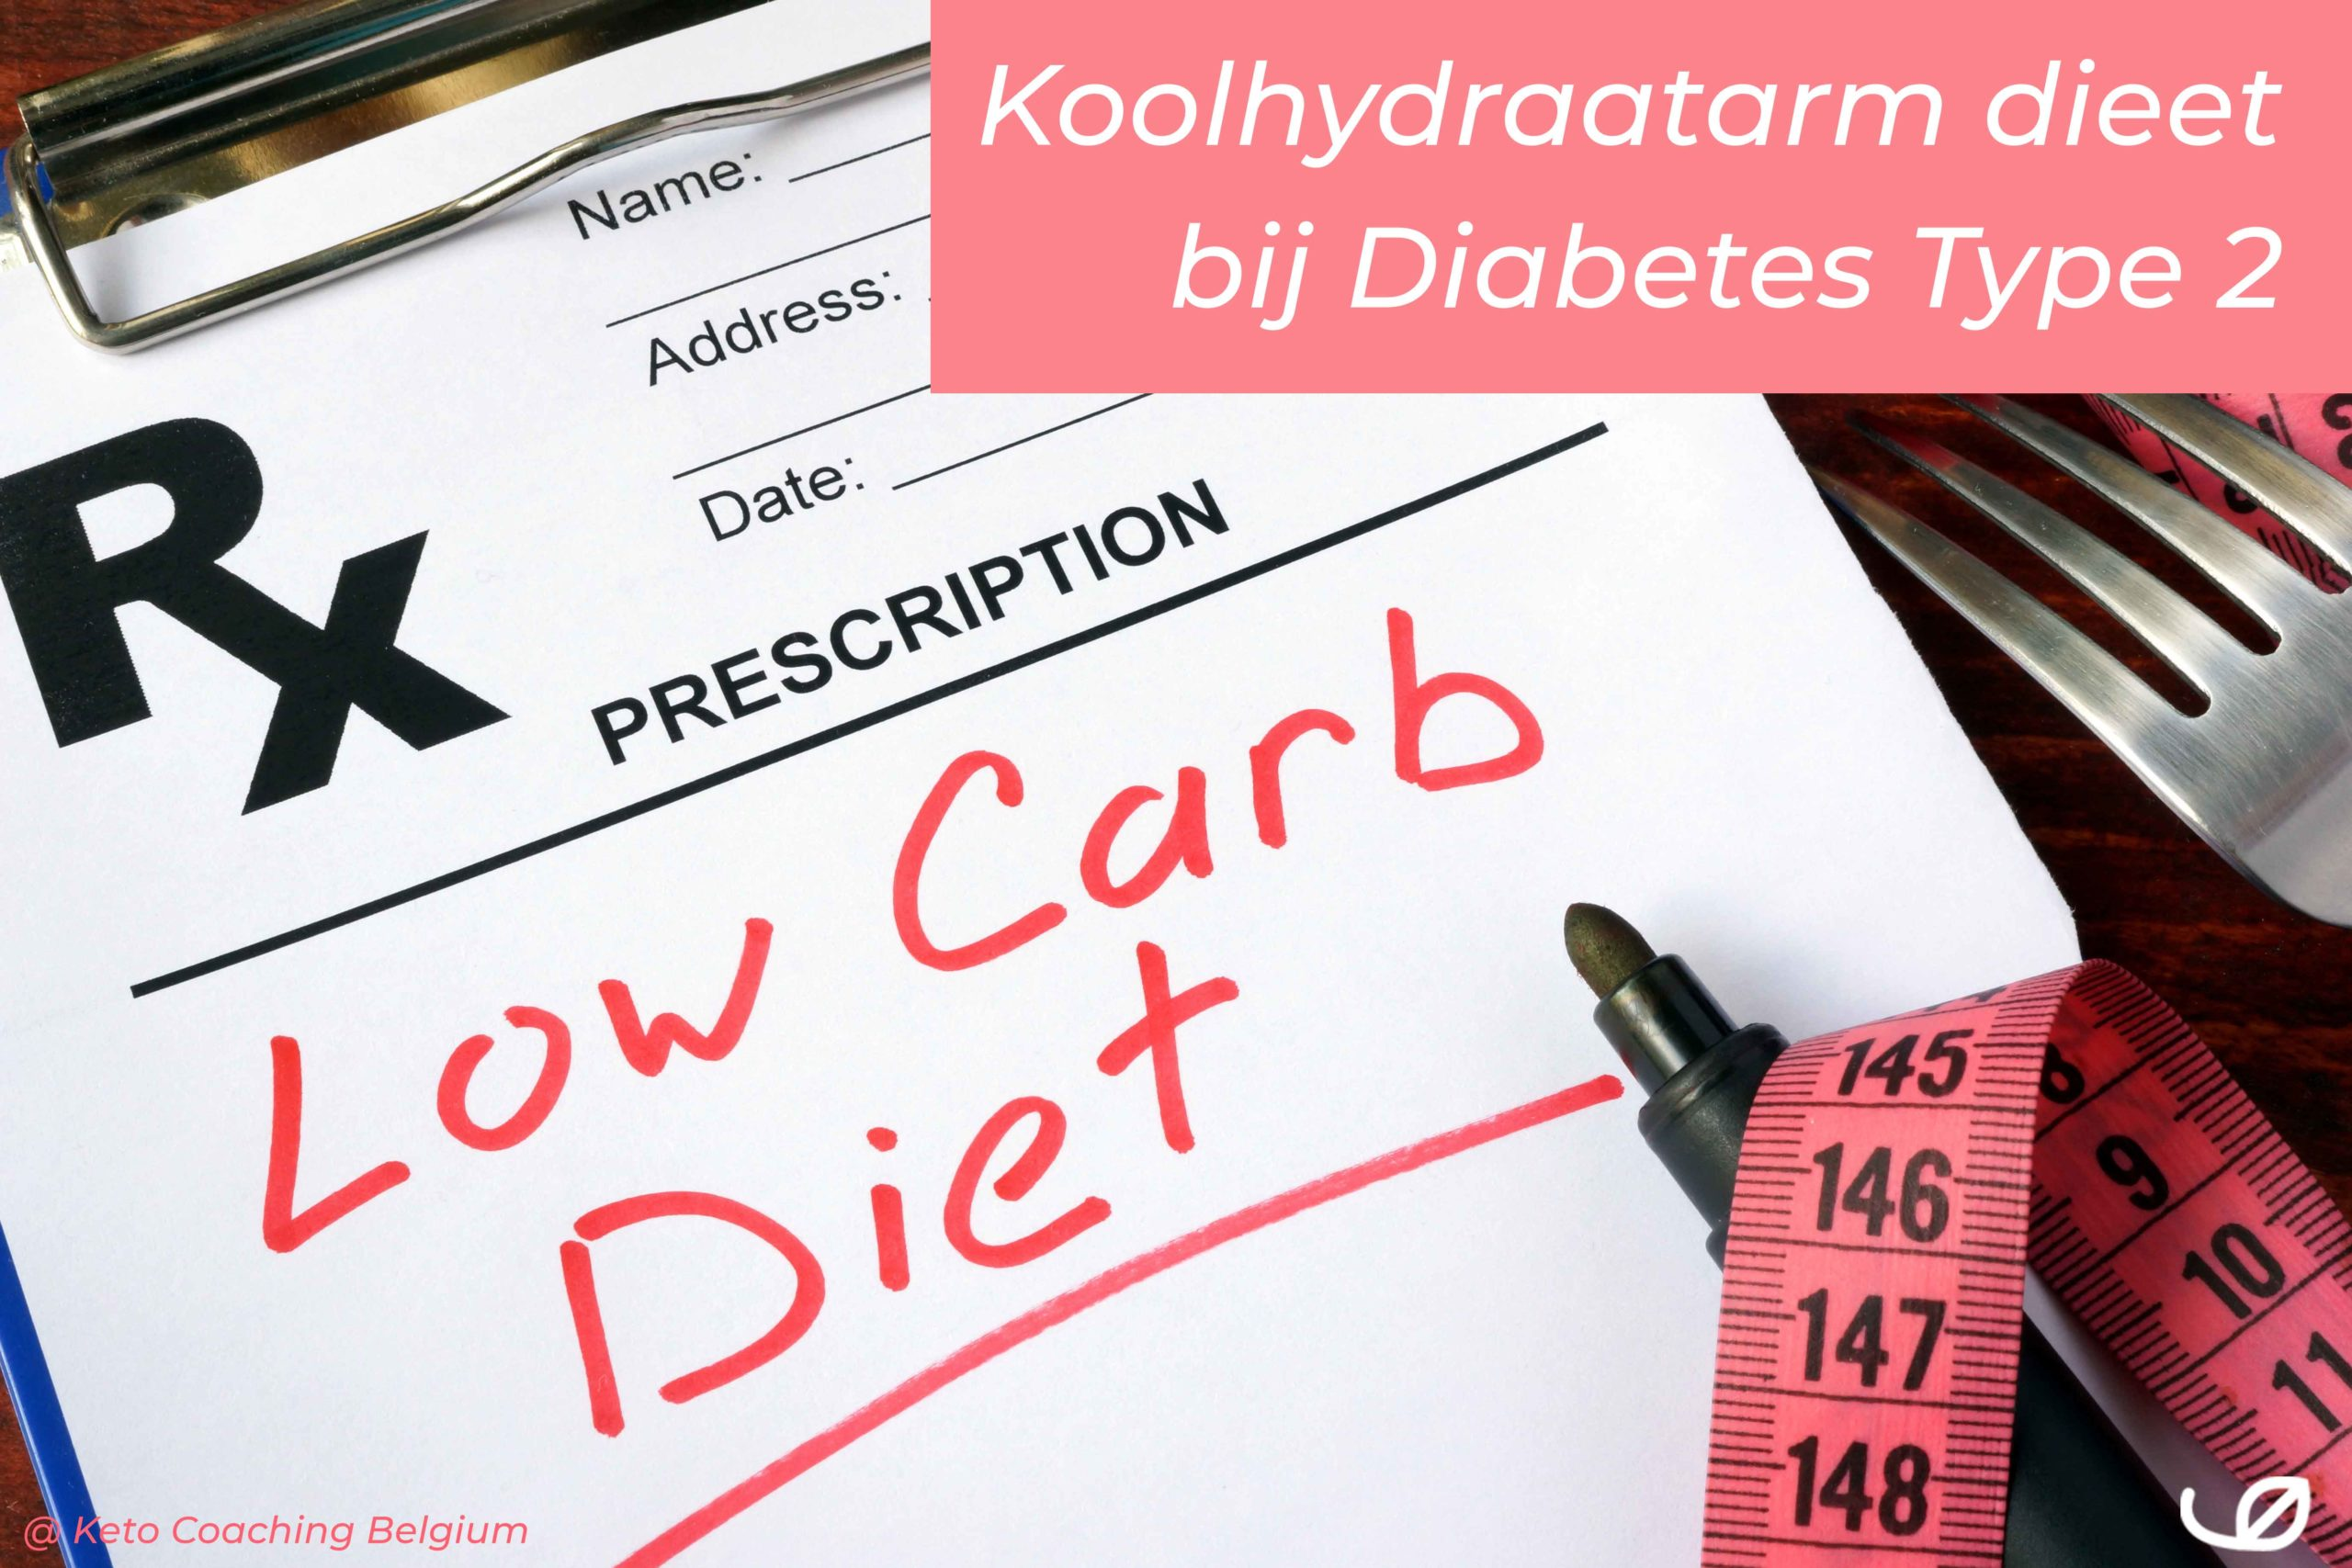 Koolhydraatarm dieet low-carb diet for diabetes type 2 and prediabetes